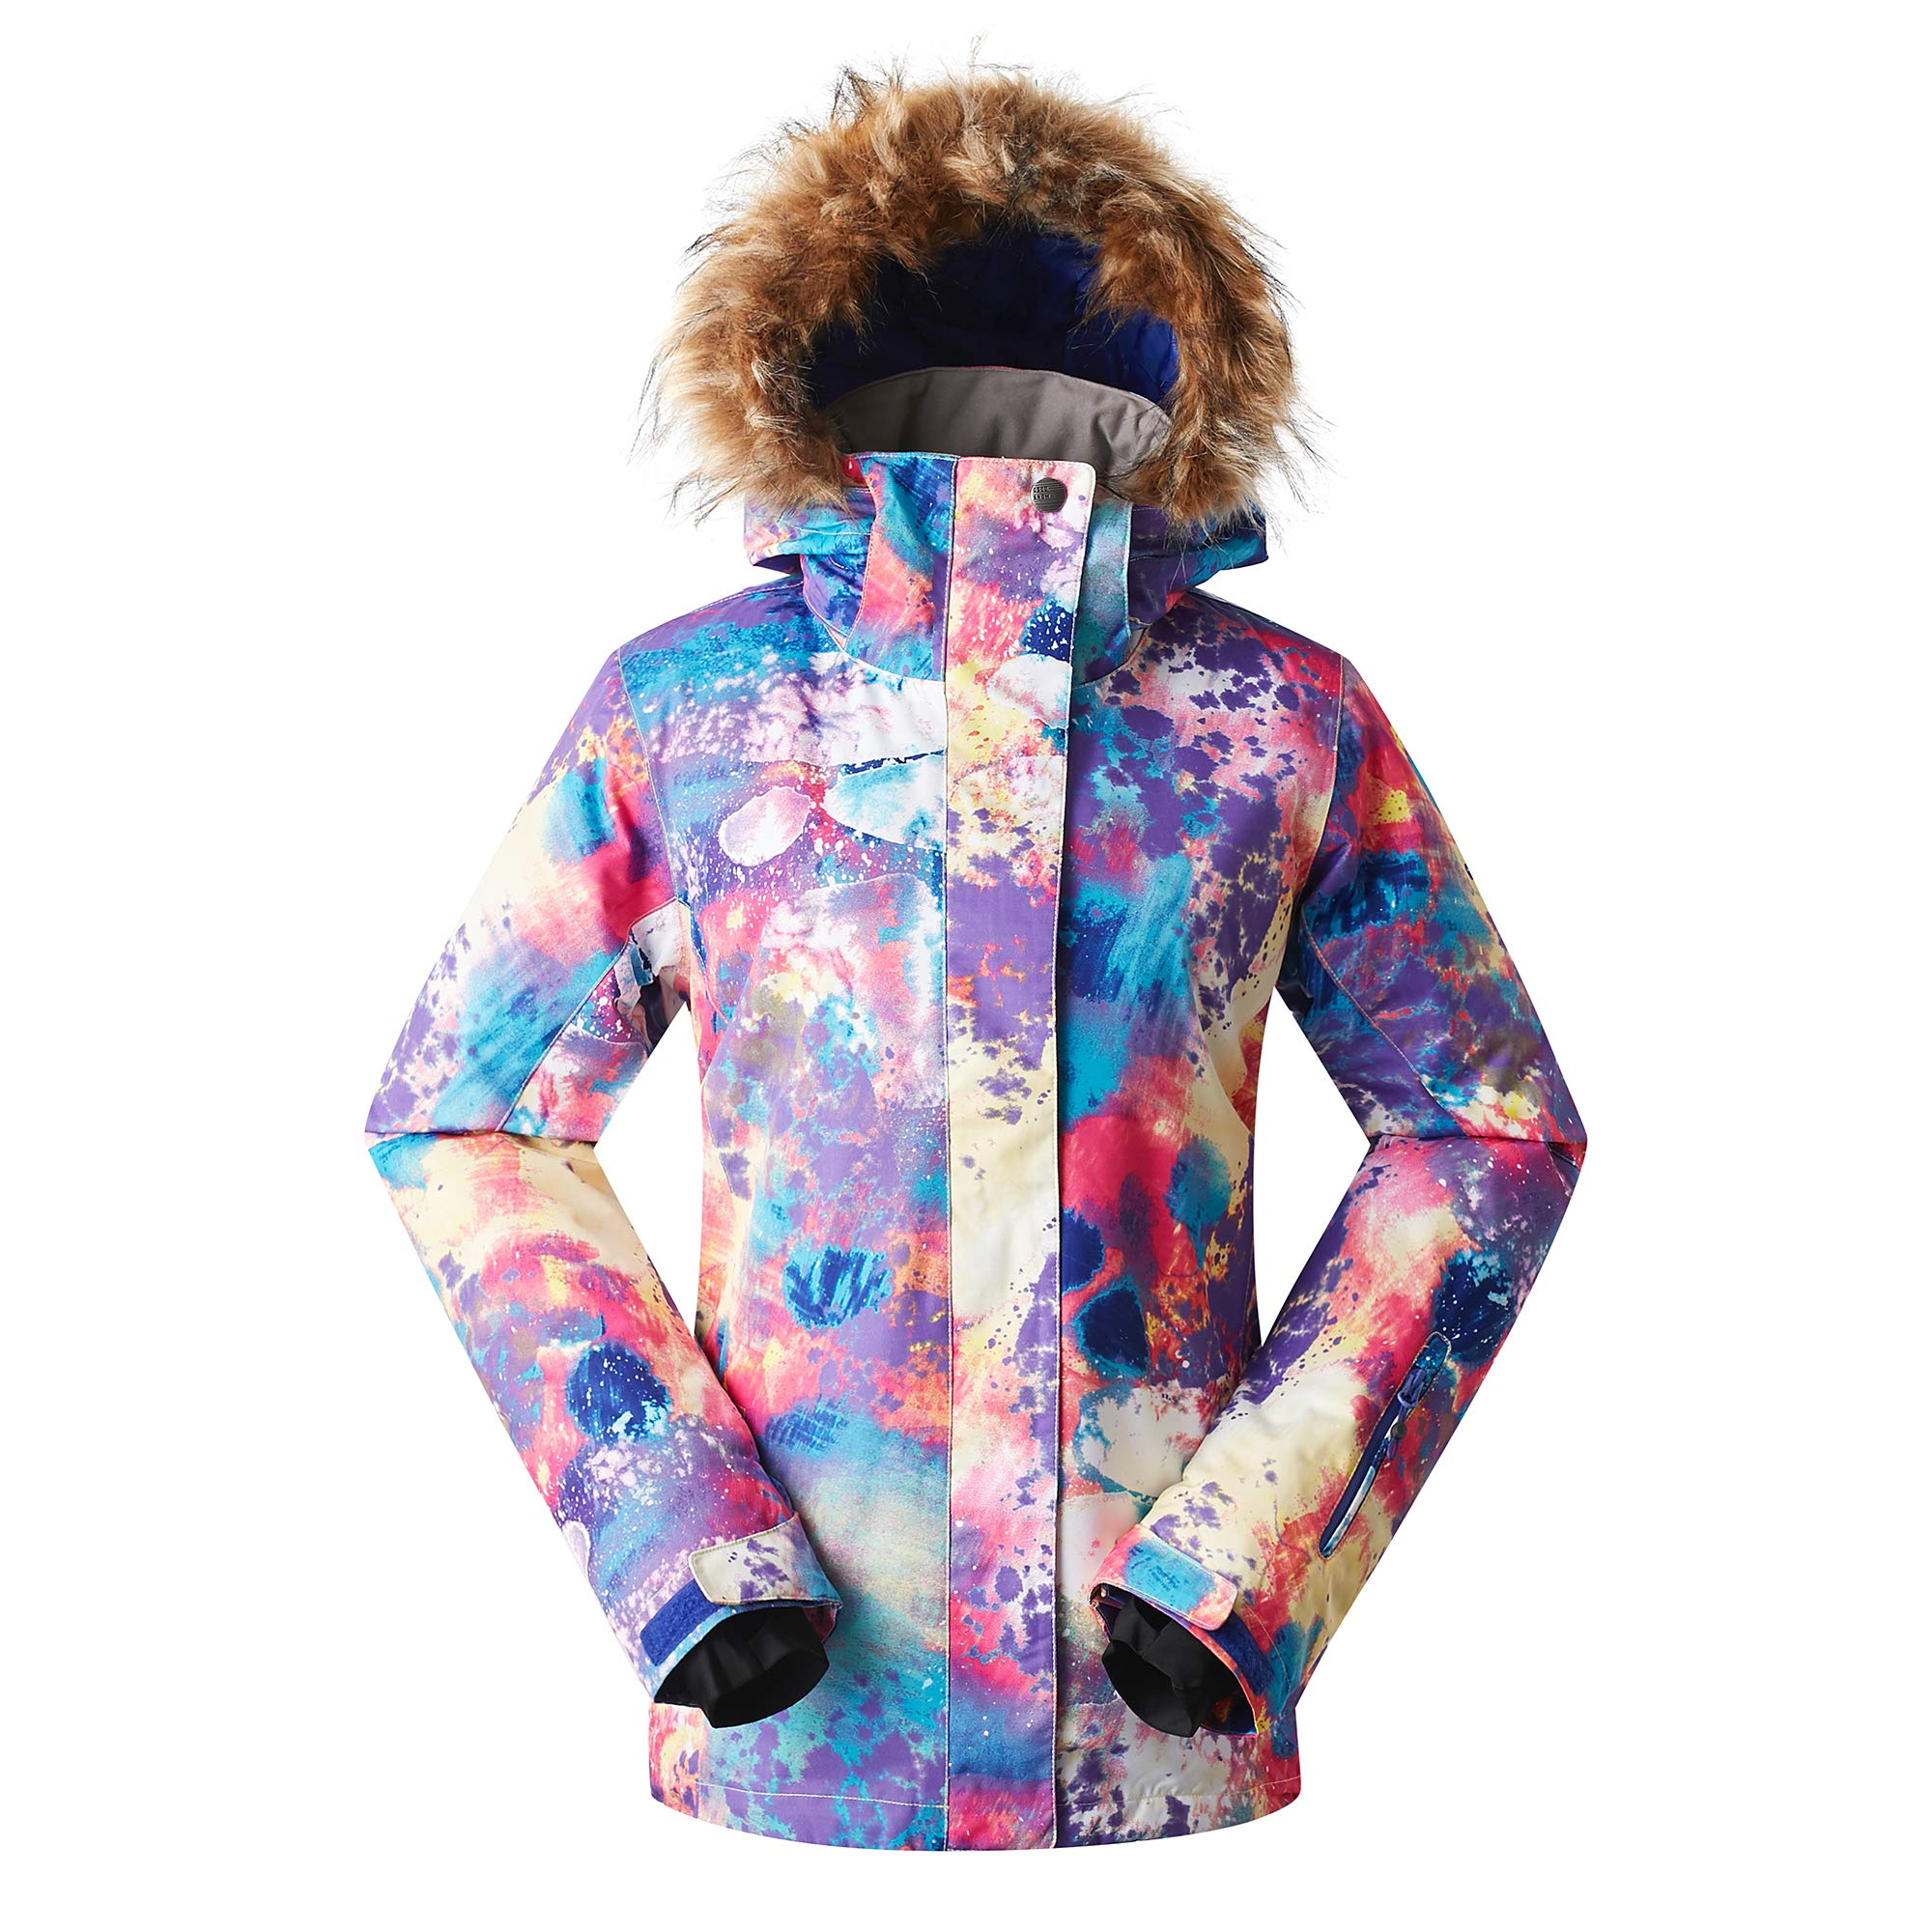 c3c32182d2 GSOU Snow Women s Ski Jacket Snowboarding Jacket for Women Snow Suit  Colorful Ski Clothes Windproof Waterproof Coat